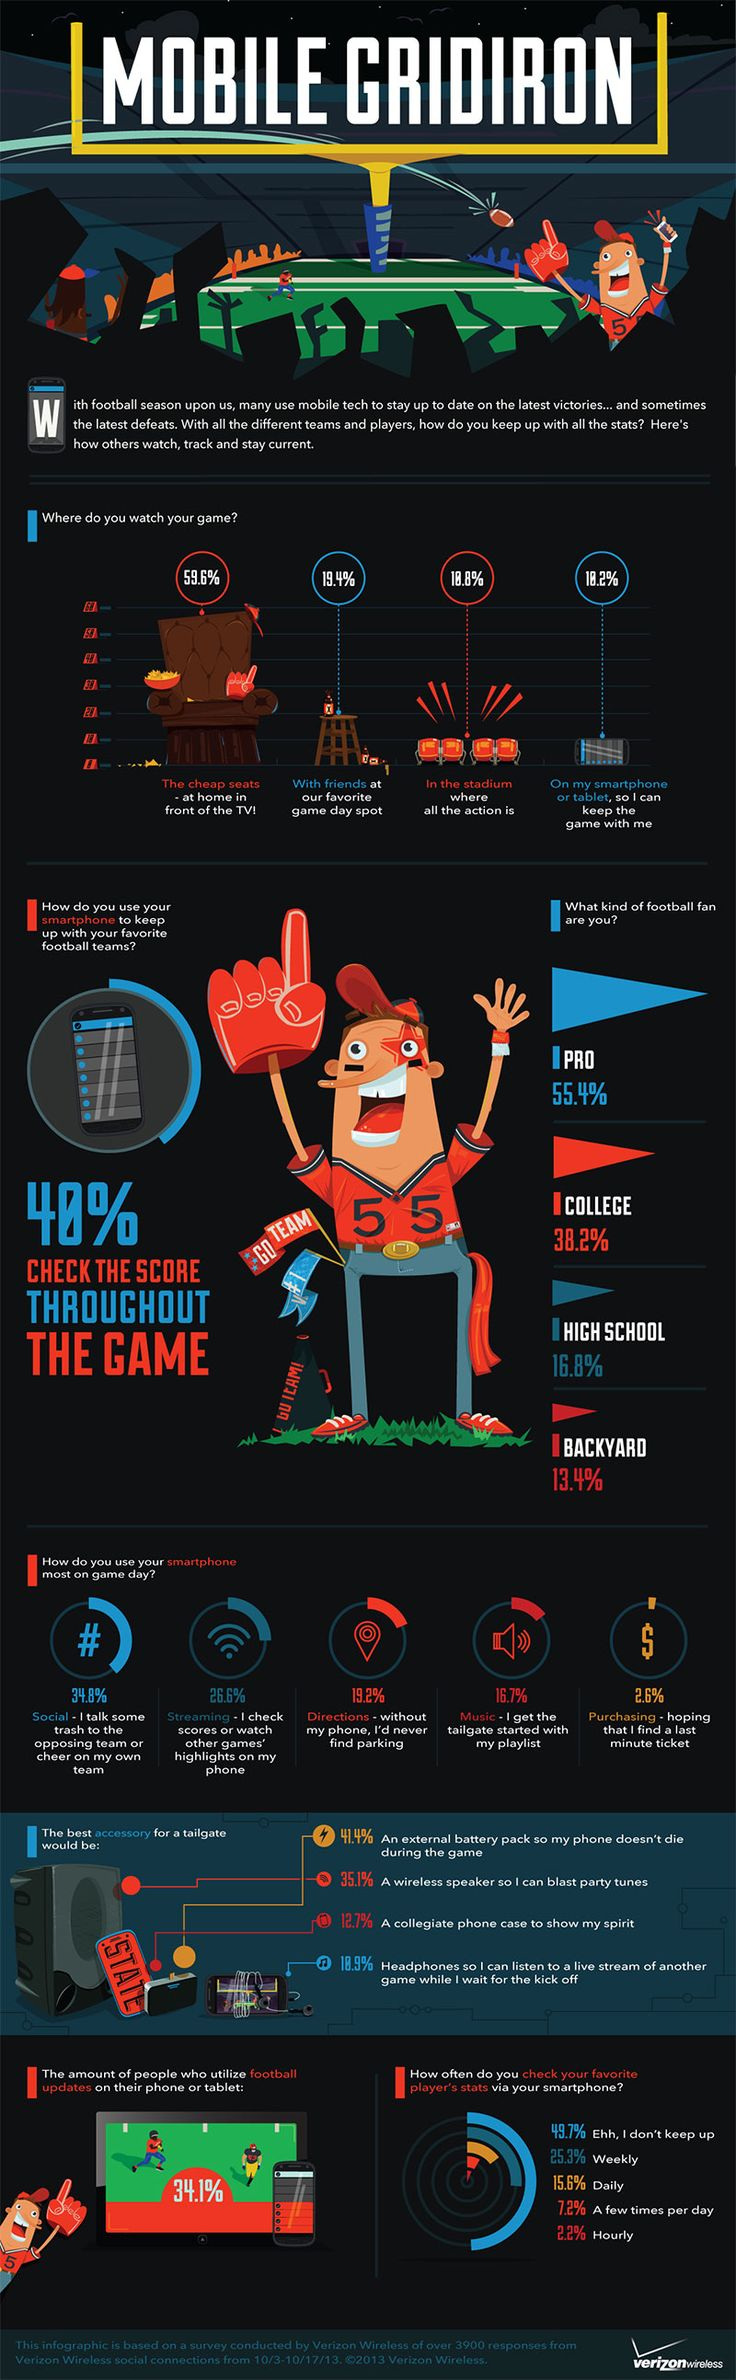 It's time for another edition ofInfographic Friday. Today's submission comes to us from Verizon Wireless and highlights the ways that football fans, both professional and college, consume content ...